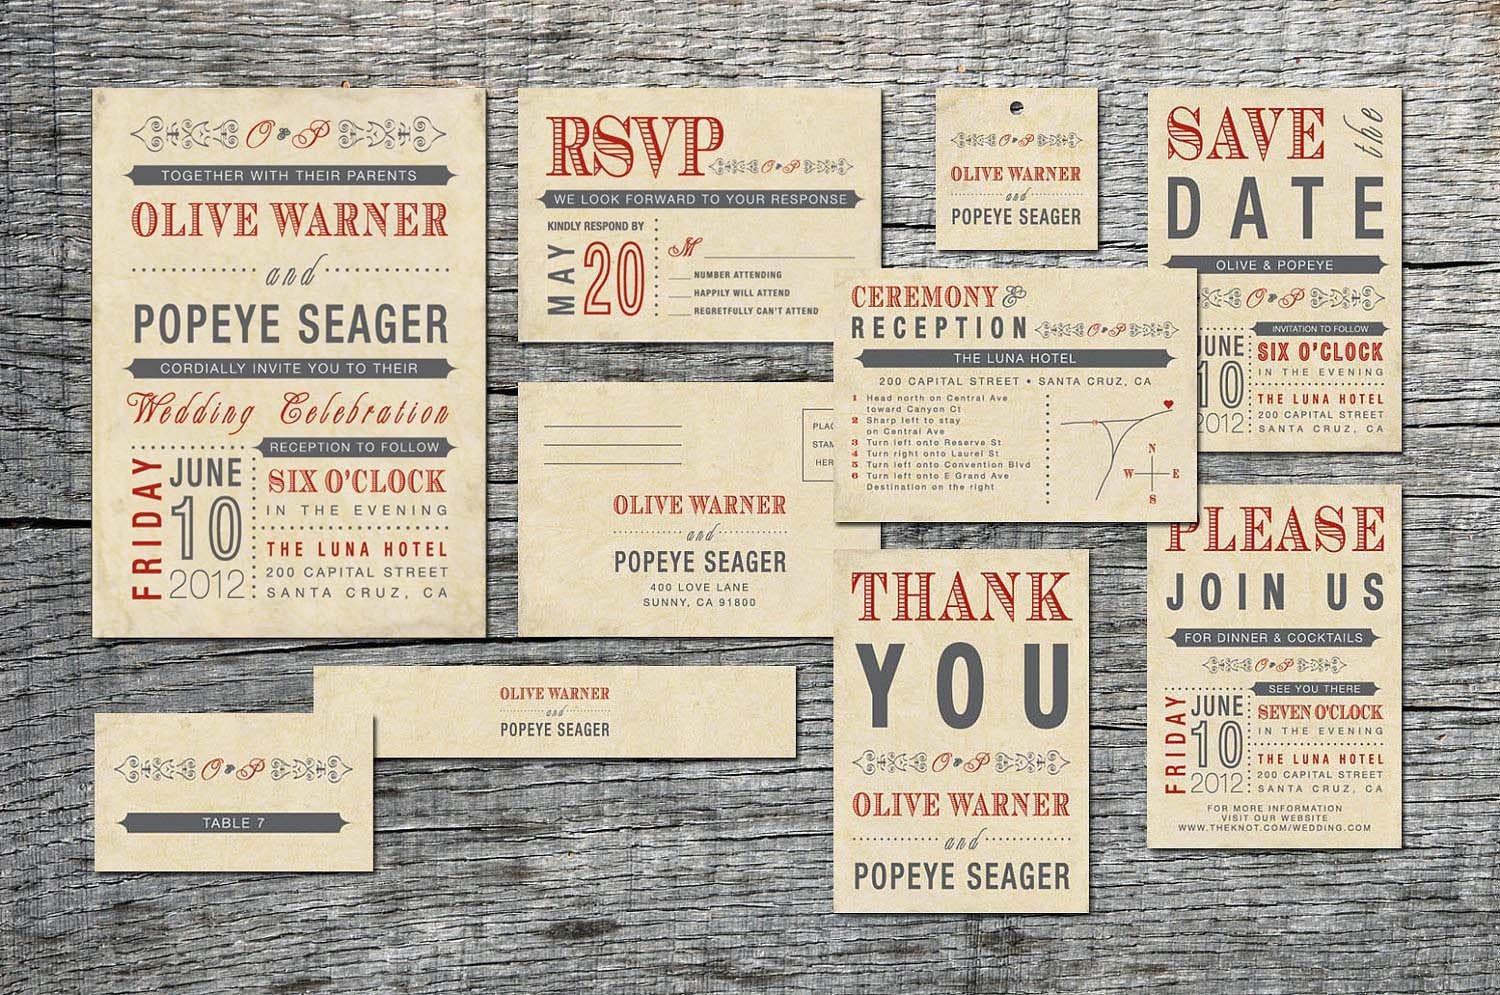 Parts Of Wedding Invitation: Vintage Wedding Invitation Complete Set Old Fashioned Style